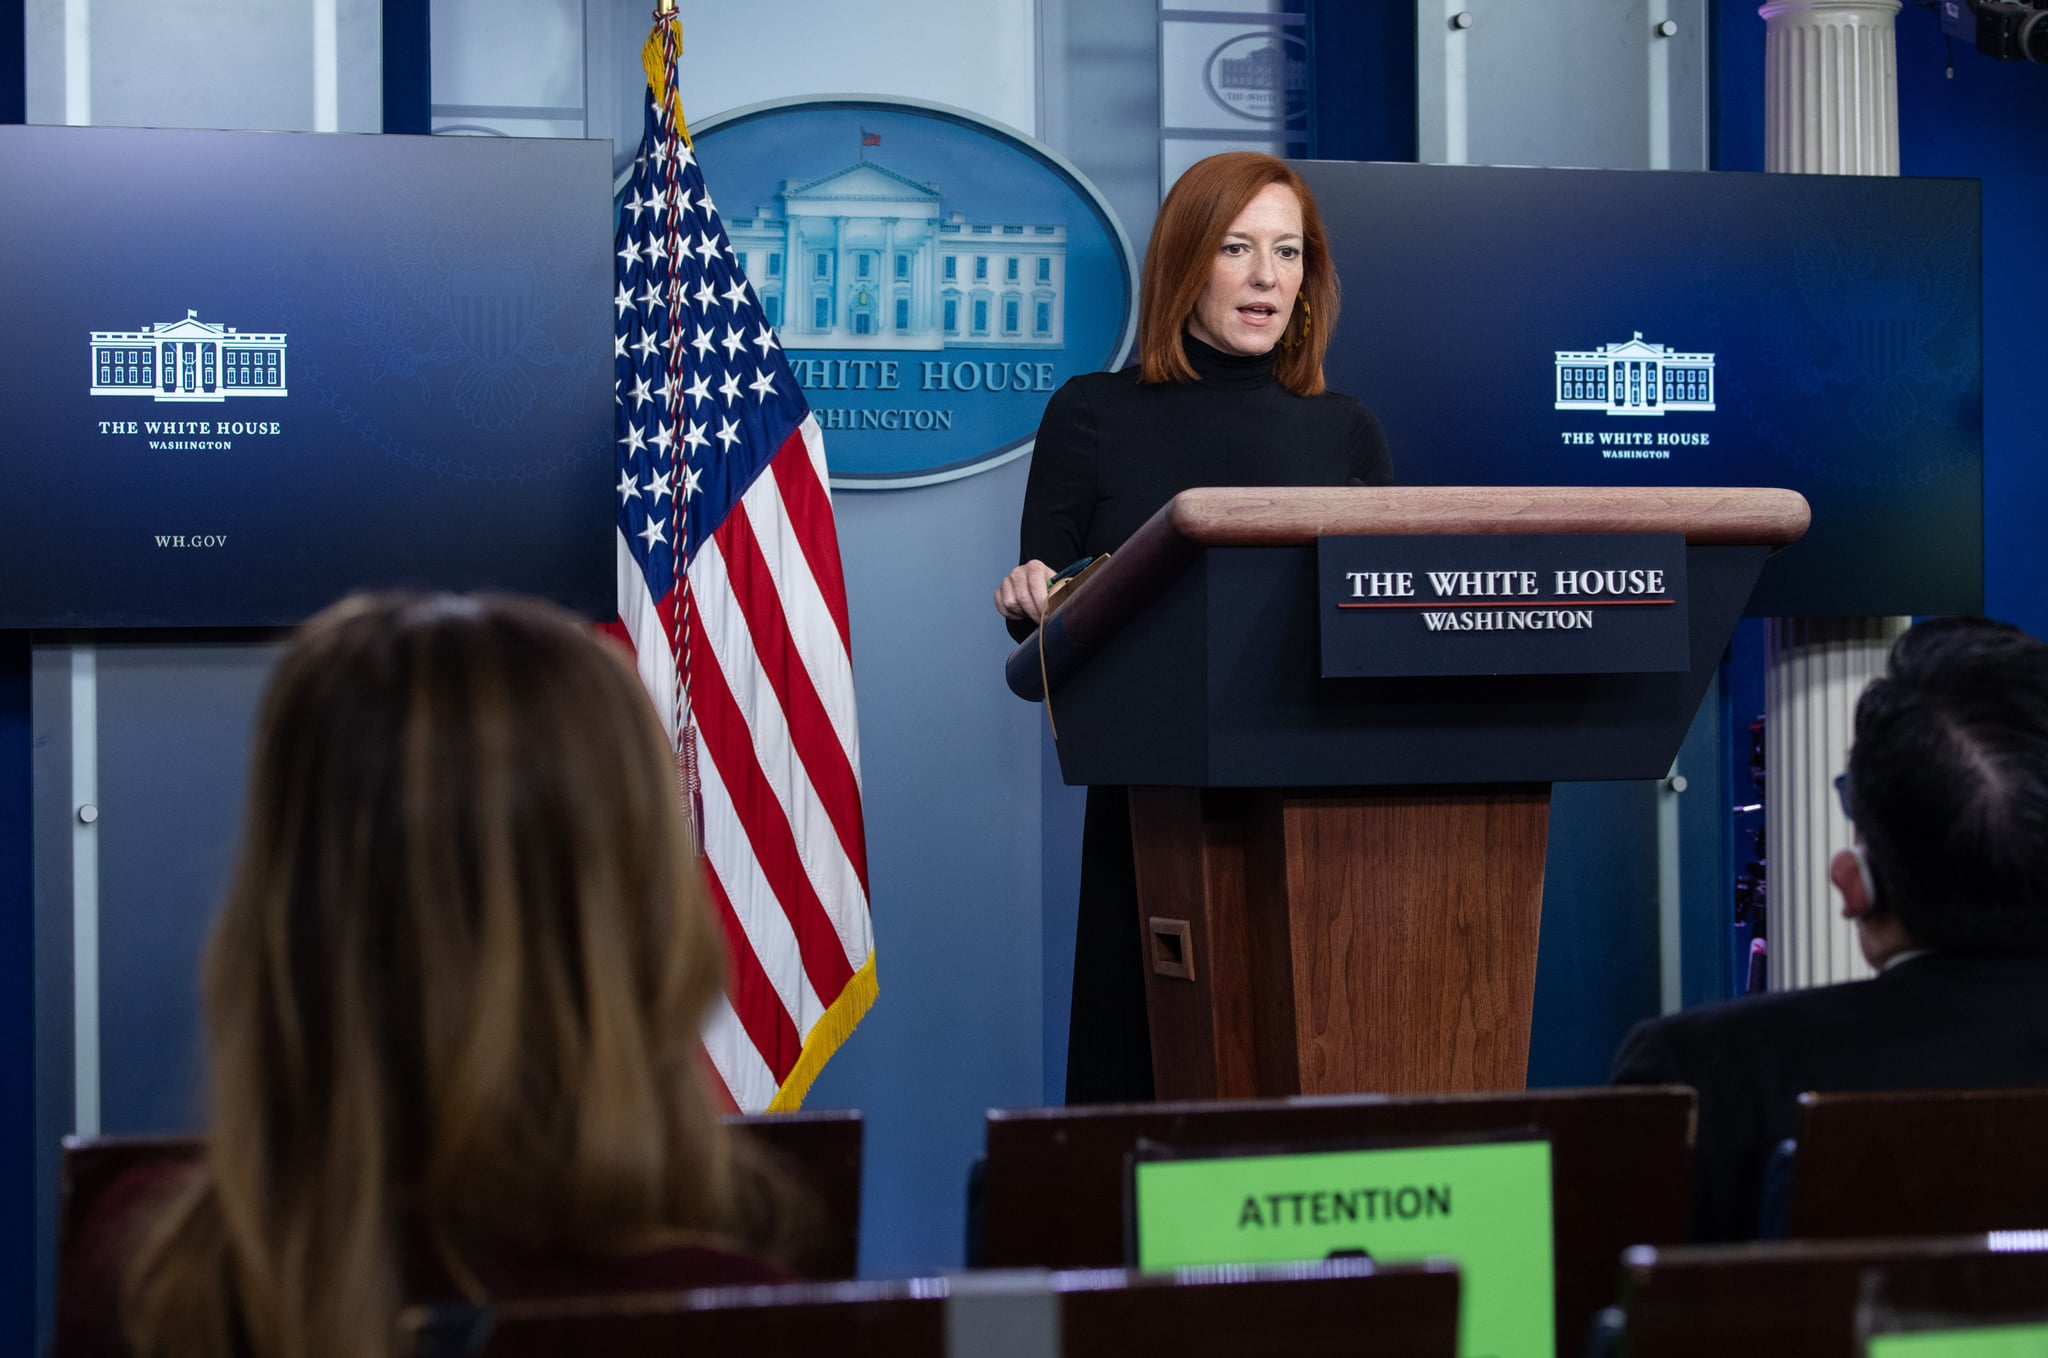 White House Press Secretary Jen Psaki speaks during a press briefing on February 3, 2021, in the Brady Briefing Room of the White House in Washington, DC. (Photo by SAUL LOEB / AFP) (Photo by SAUL LOEB/AFP via Getty Images)